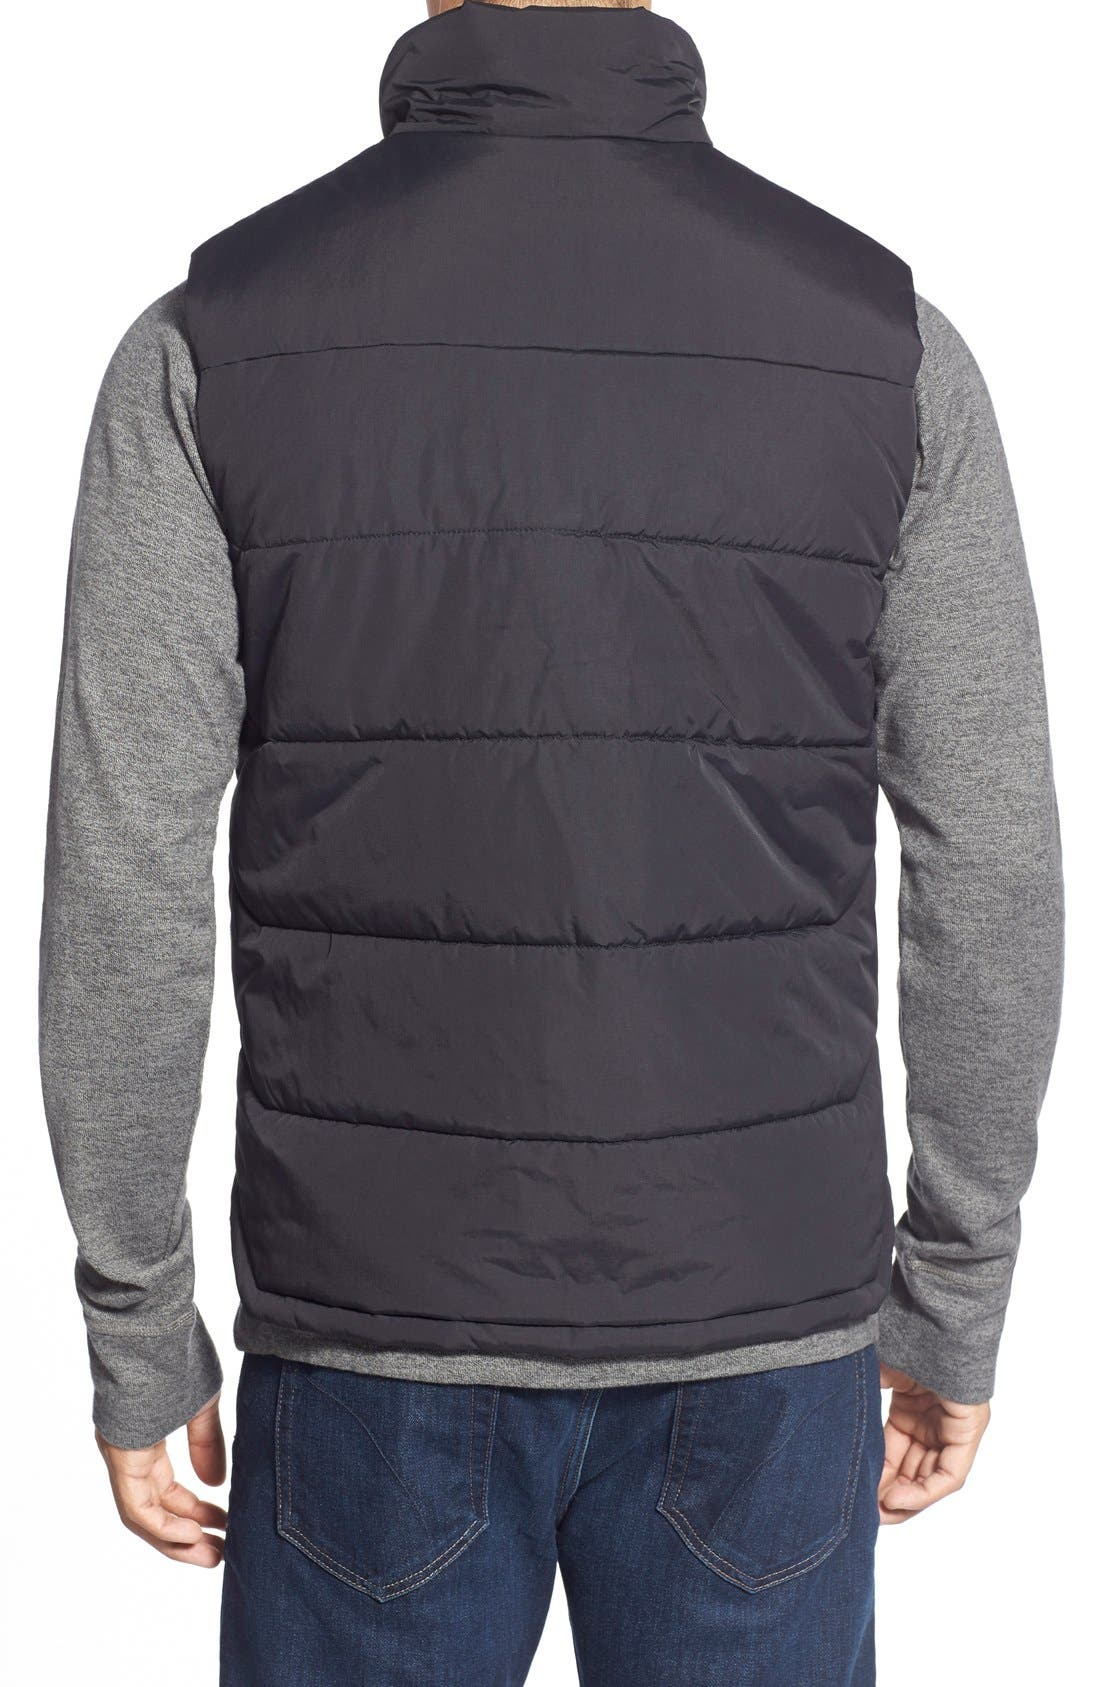 'Patrick's Point' Quilted Vest,                             Alternate thumbnail 3, color,                             001